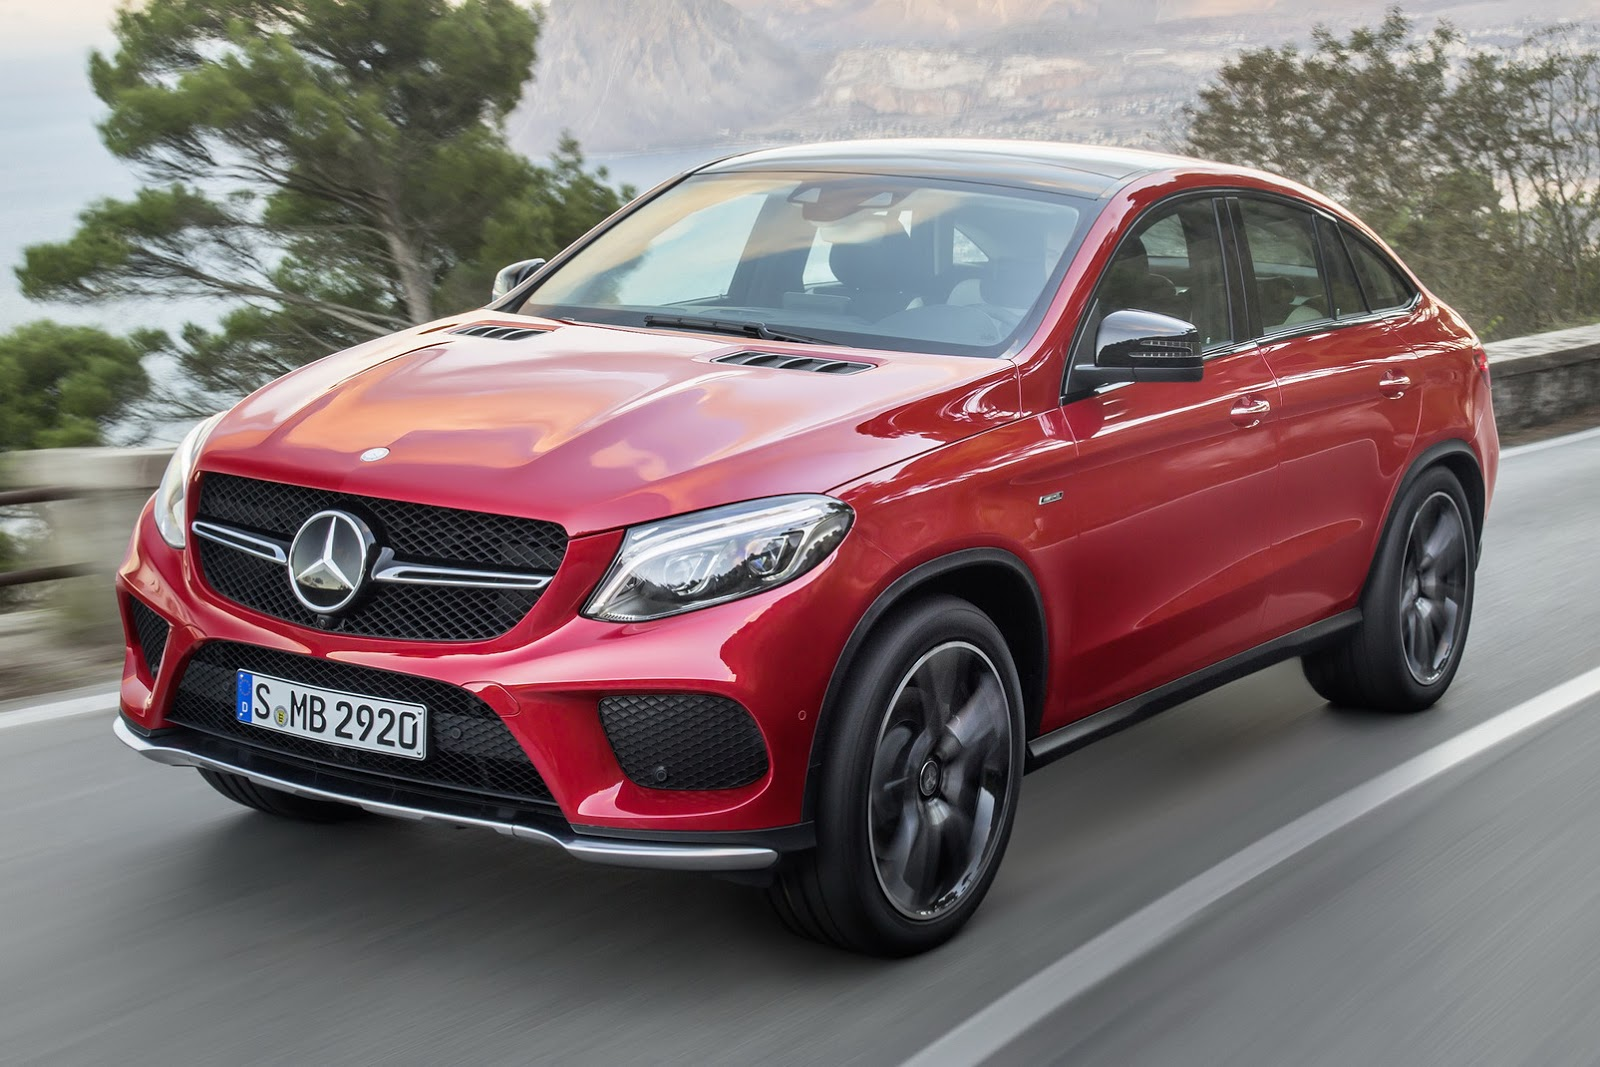 Mercedes gle coupe vs bmw x6 zdj cie for Mercedes benz gle coupe vs bmw x6